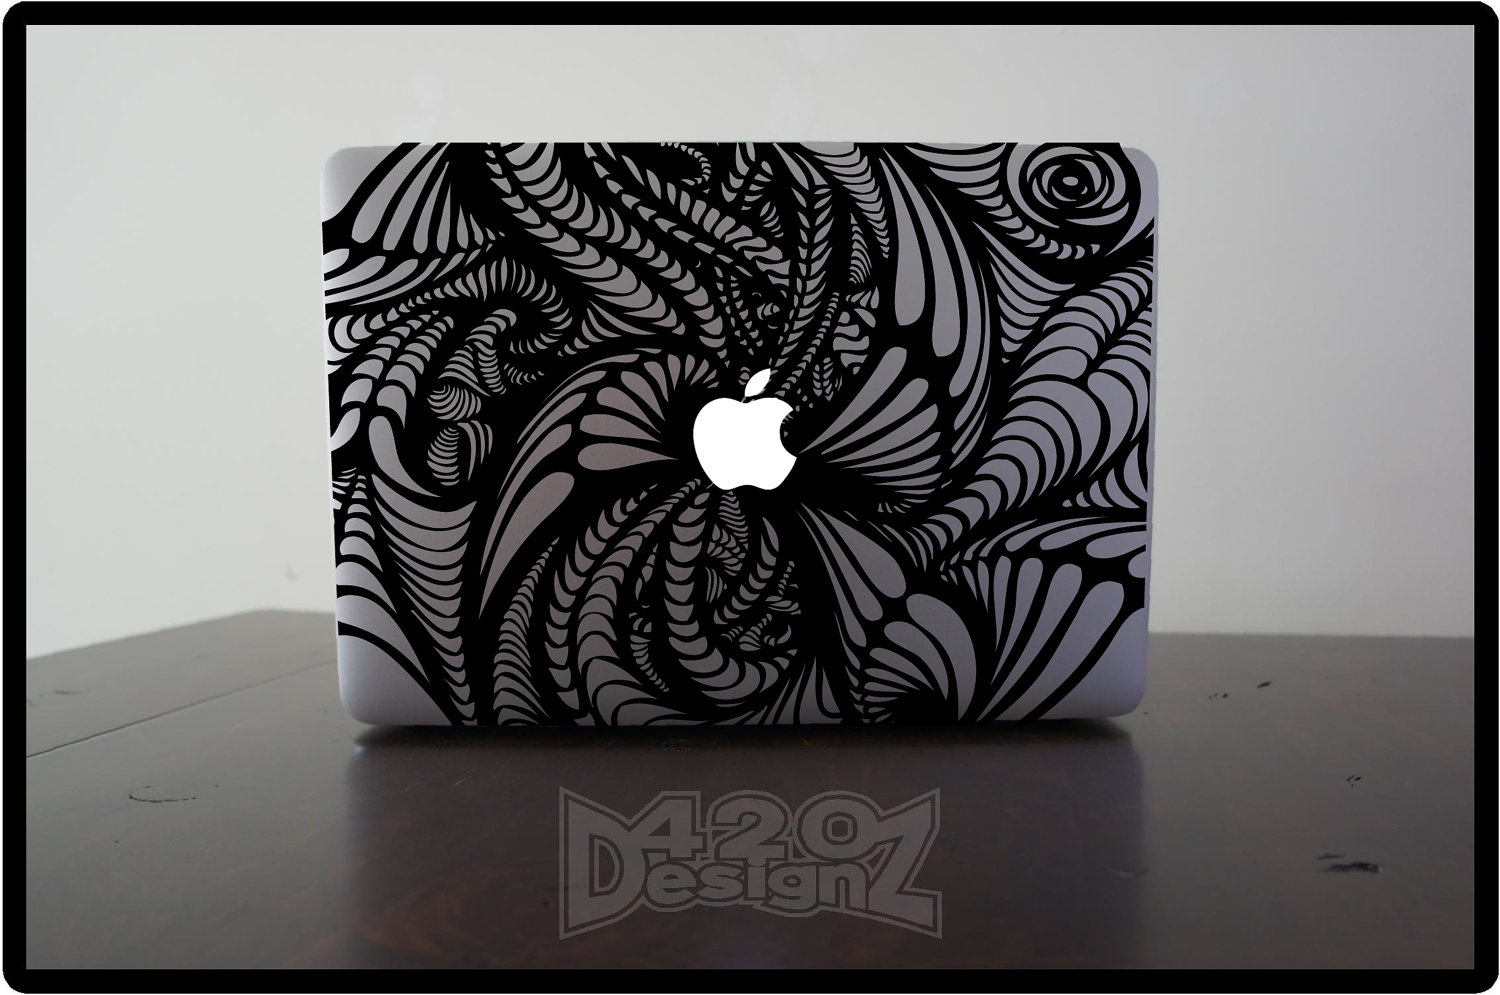 Pattern Macbook Air Macbook Pro Macbook Decals